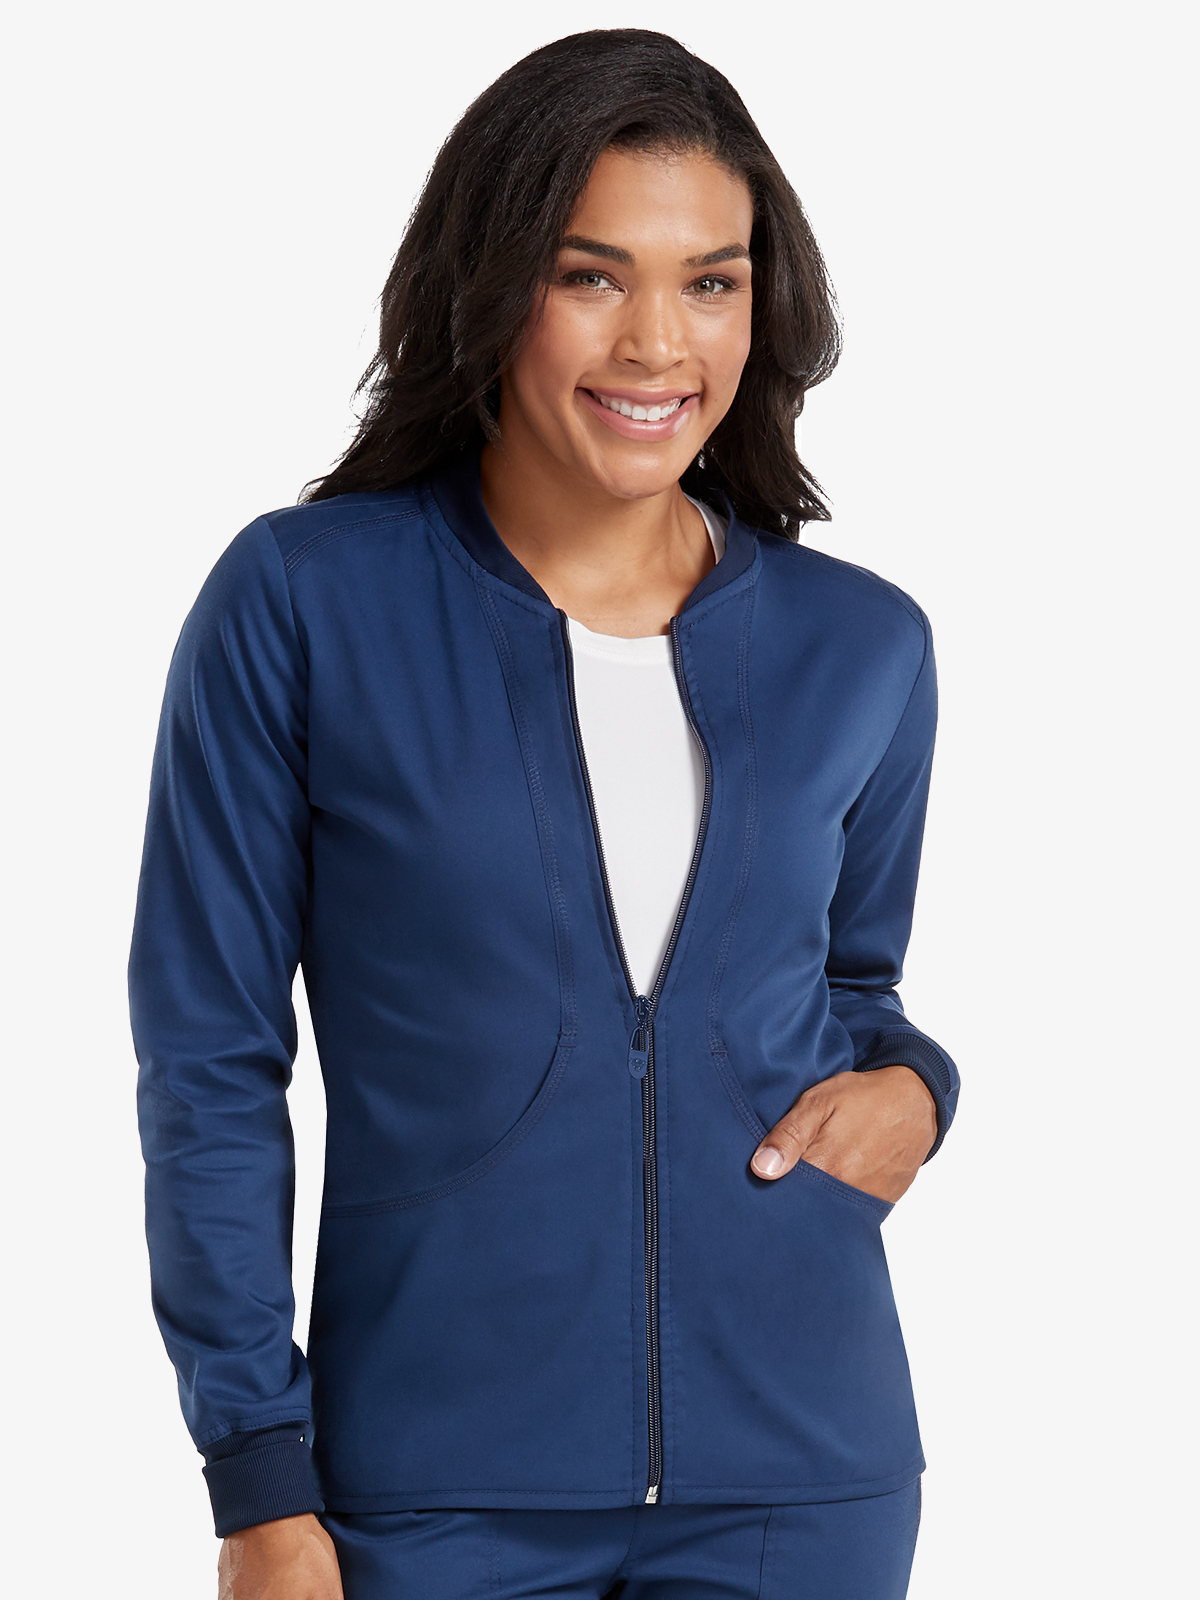 Layers Zip Front Warm Up   7663